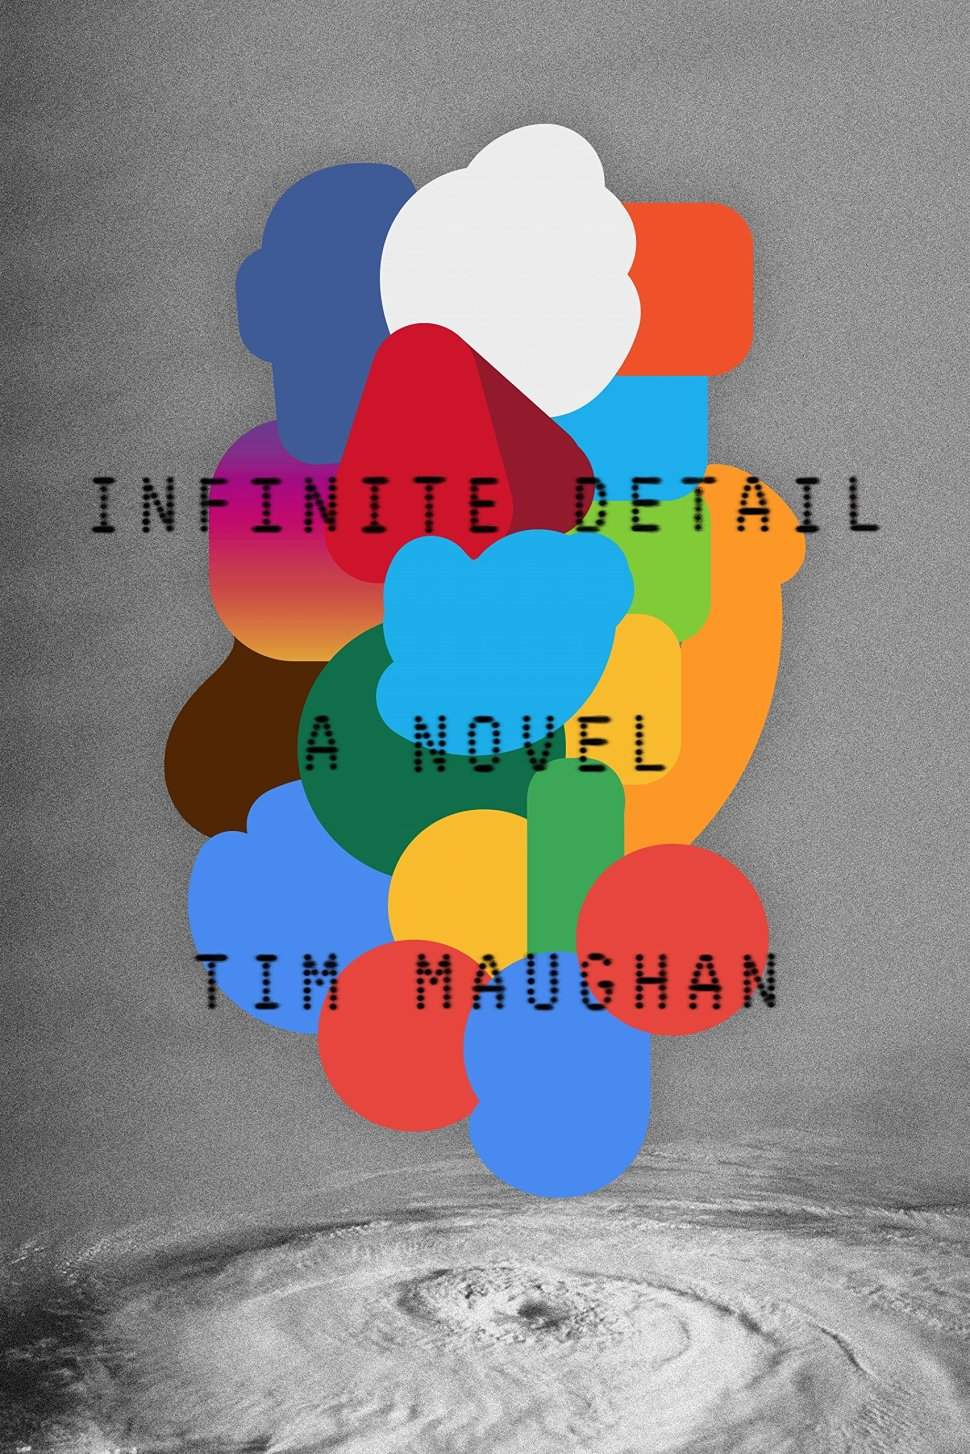 Tim Maughan s Infinite Detail: a debut sf novel about counterculture, resistance, and the post-internet apocalypse